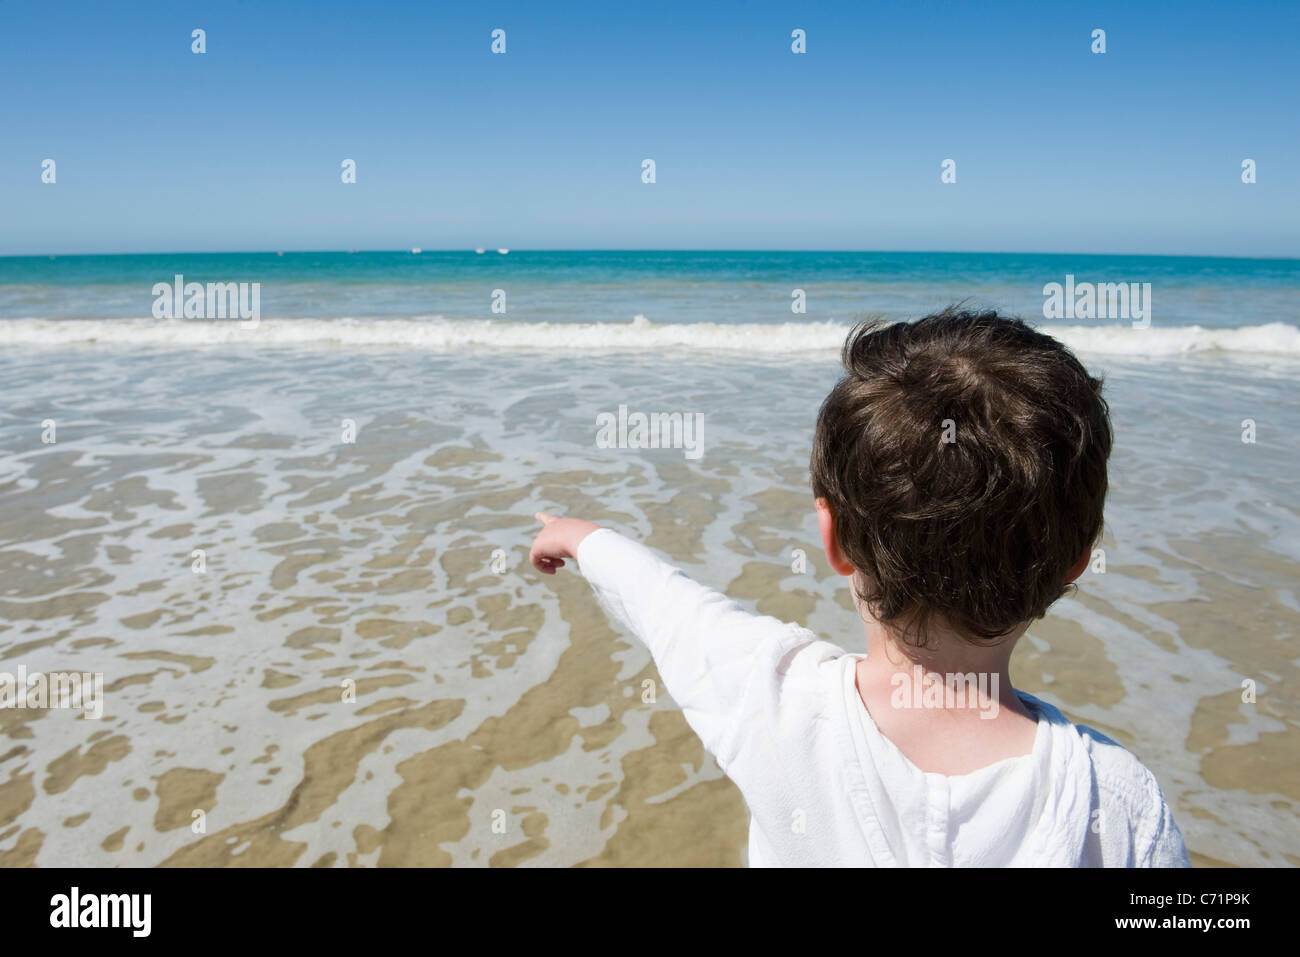 Little boy at the beach, pointing at sea, rear view - Stock Image